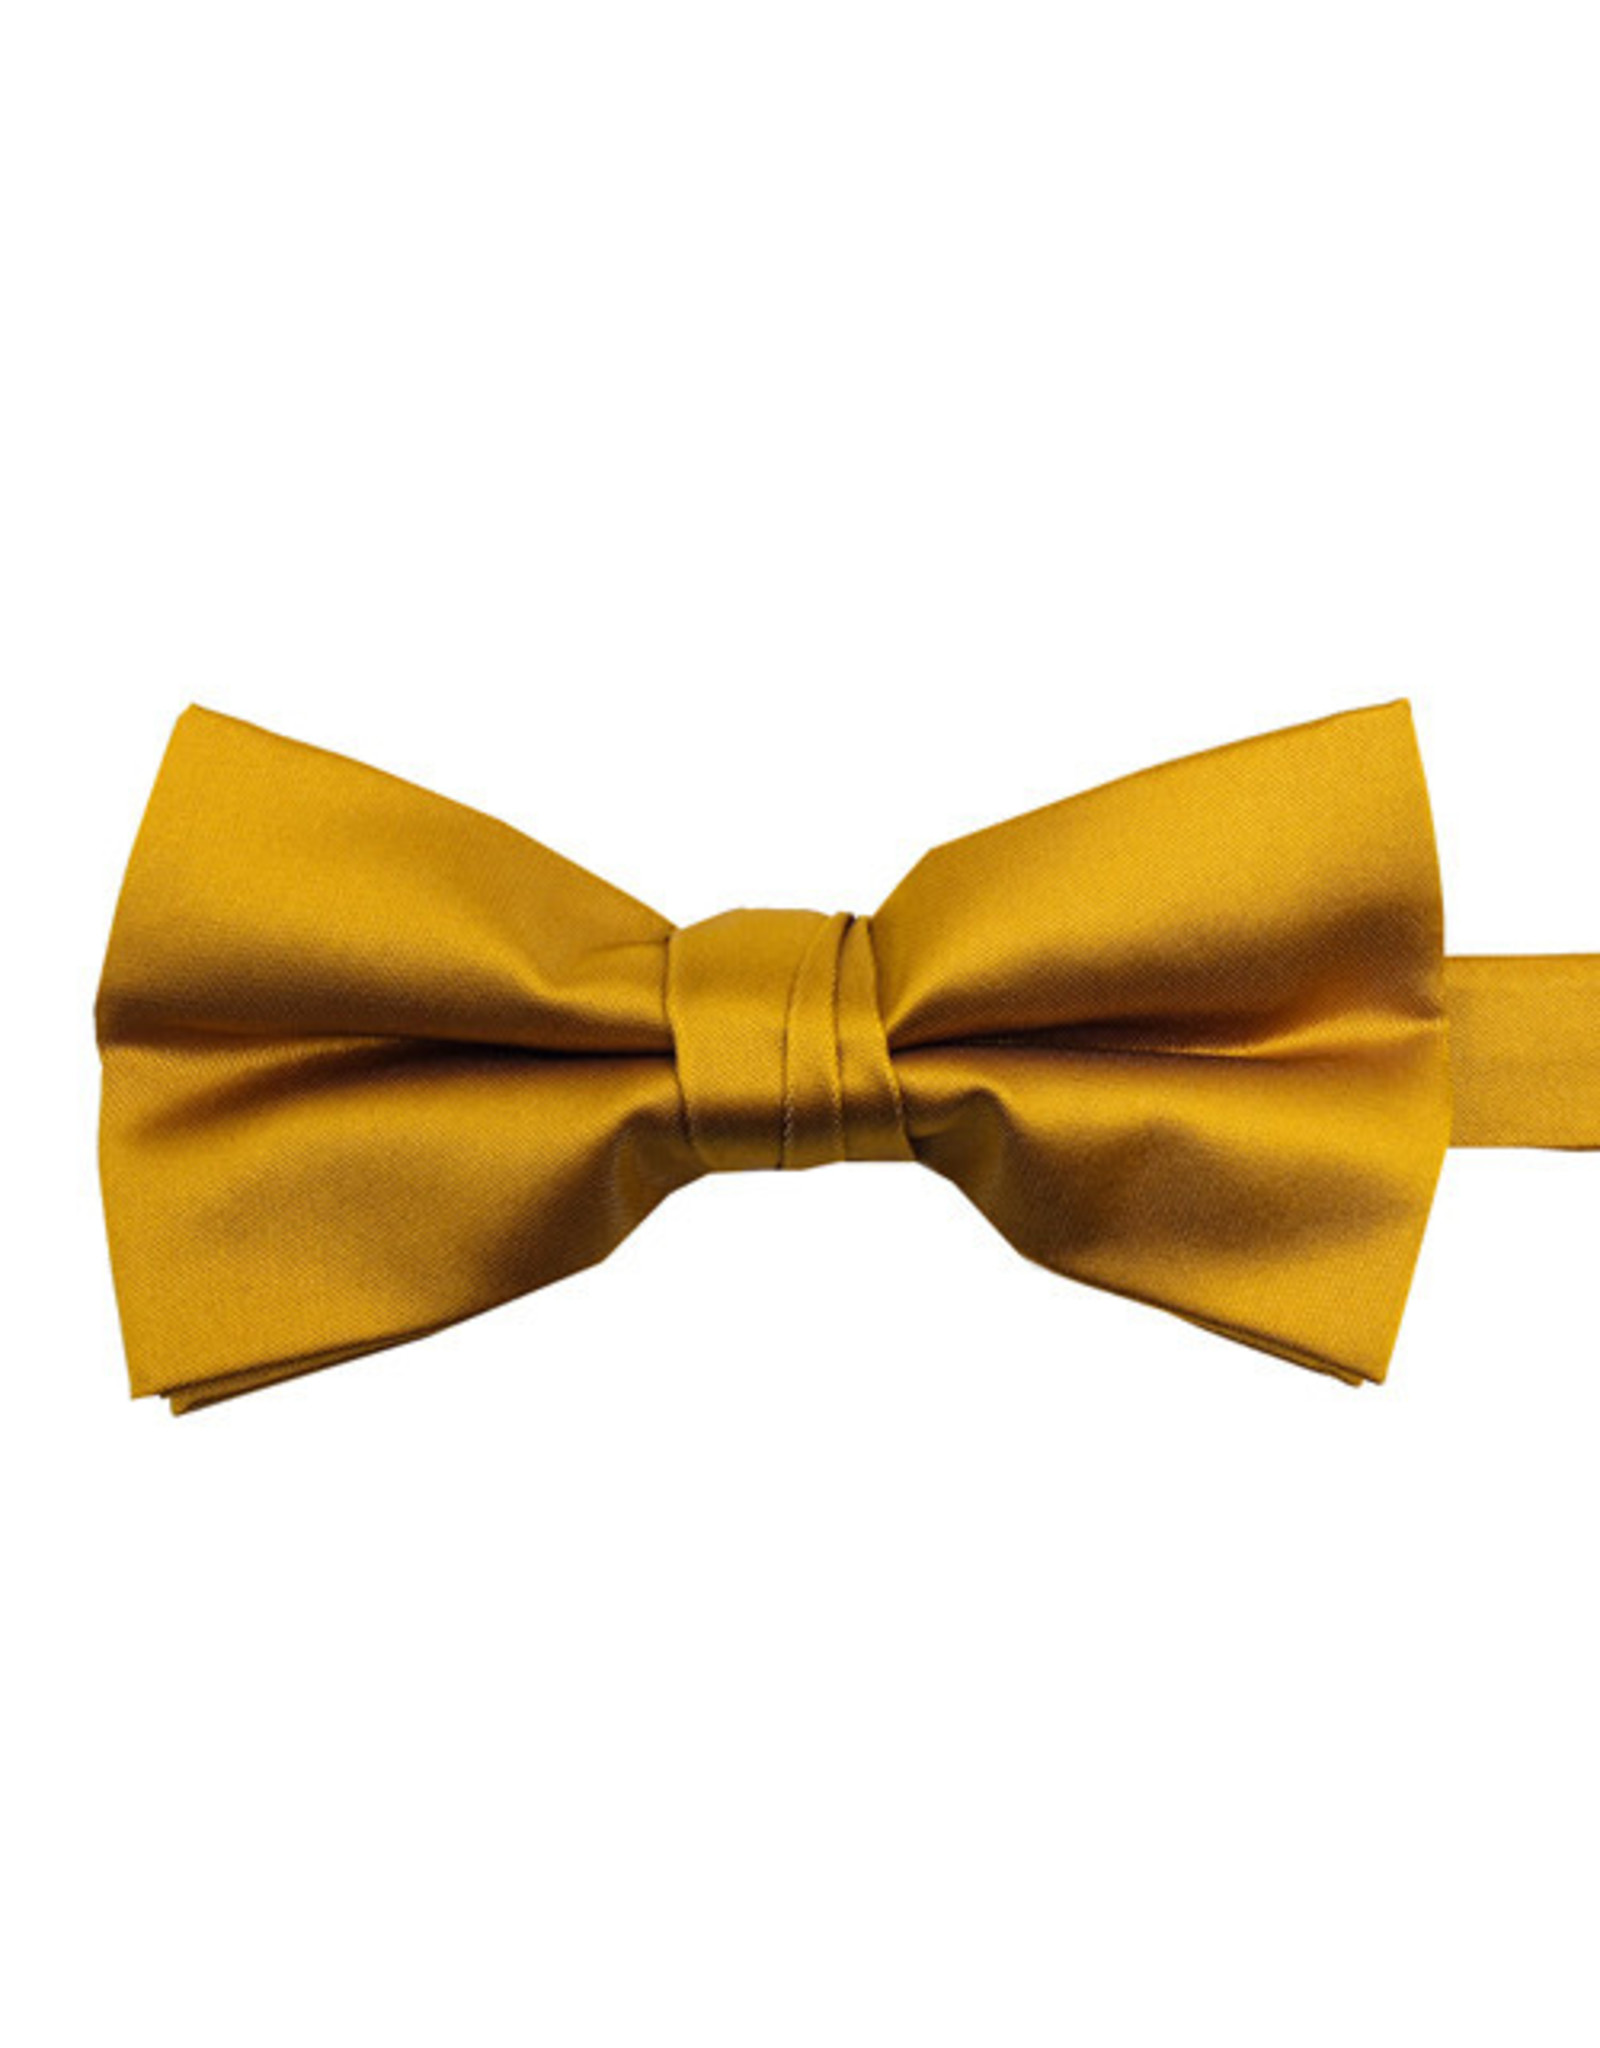 Knotz Bow Tie (pinks, champagne, gold, mauve)